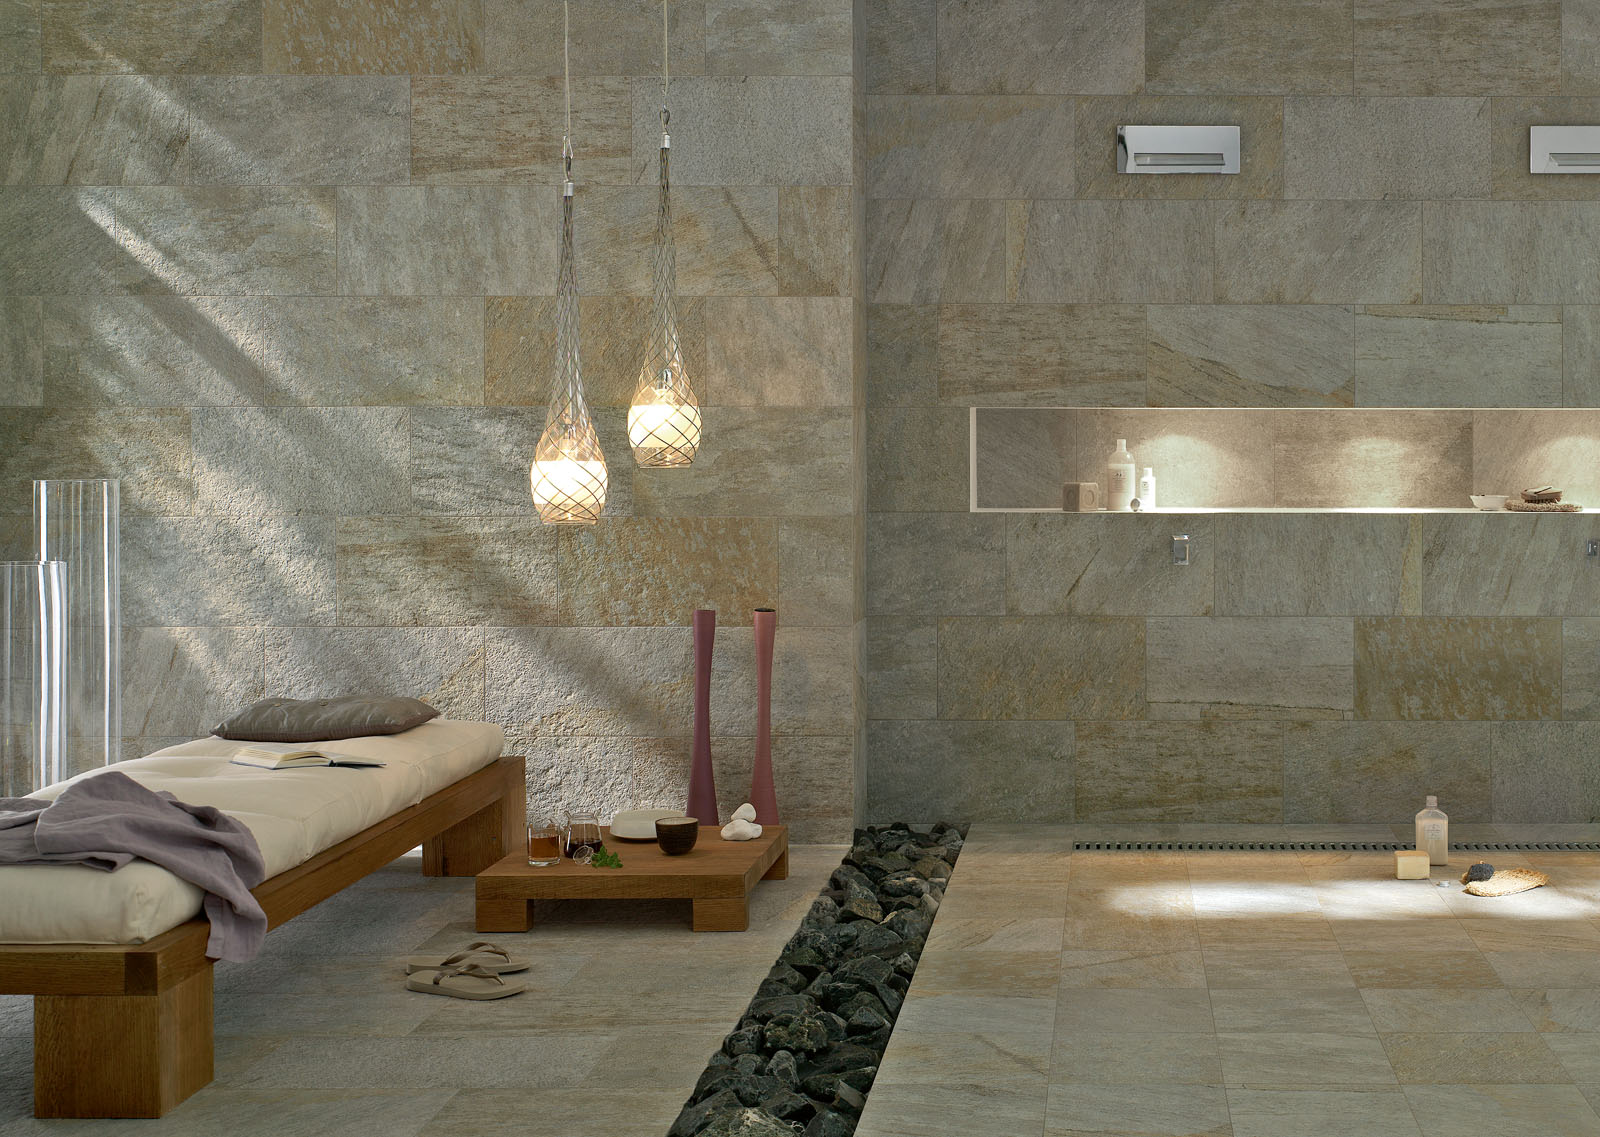 Azulejos Baño Saloni:Marazzi Porcelain Tile in Bathrooms